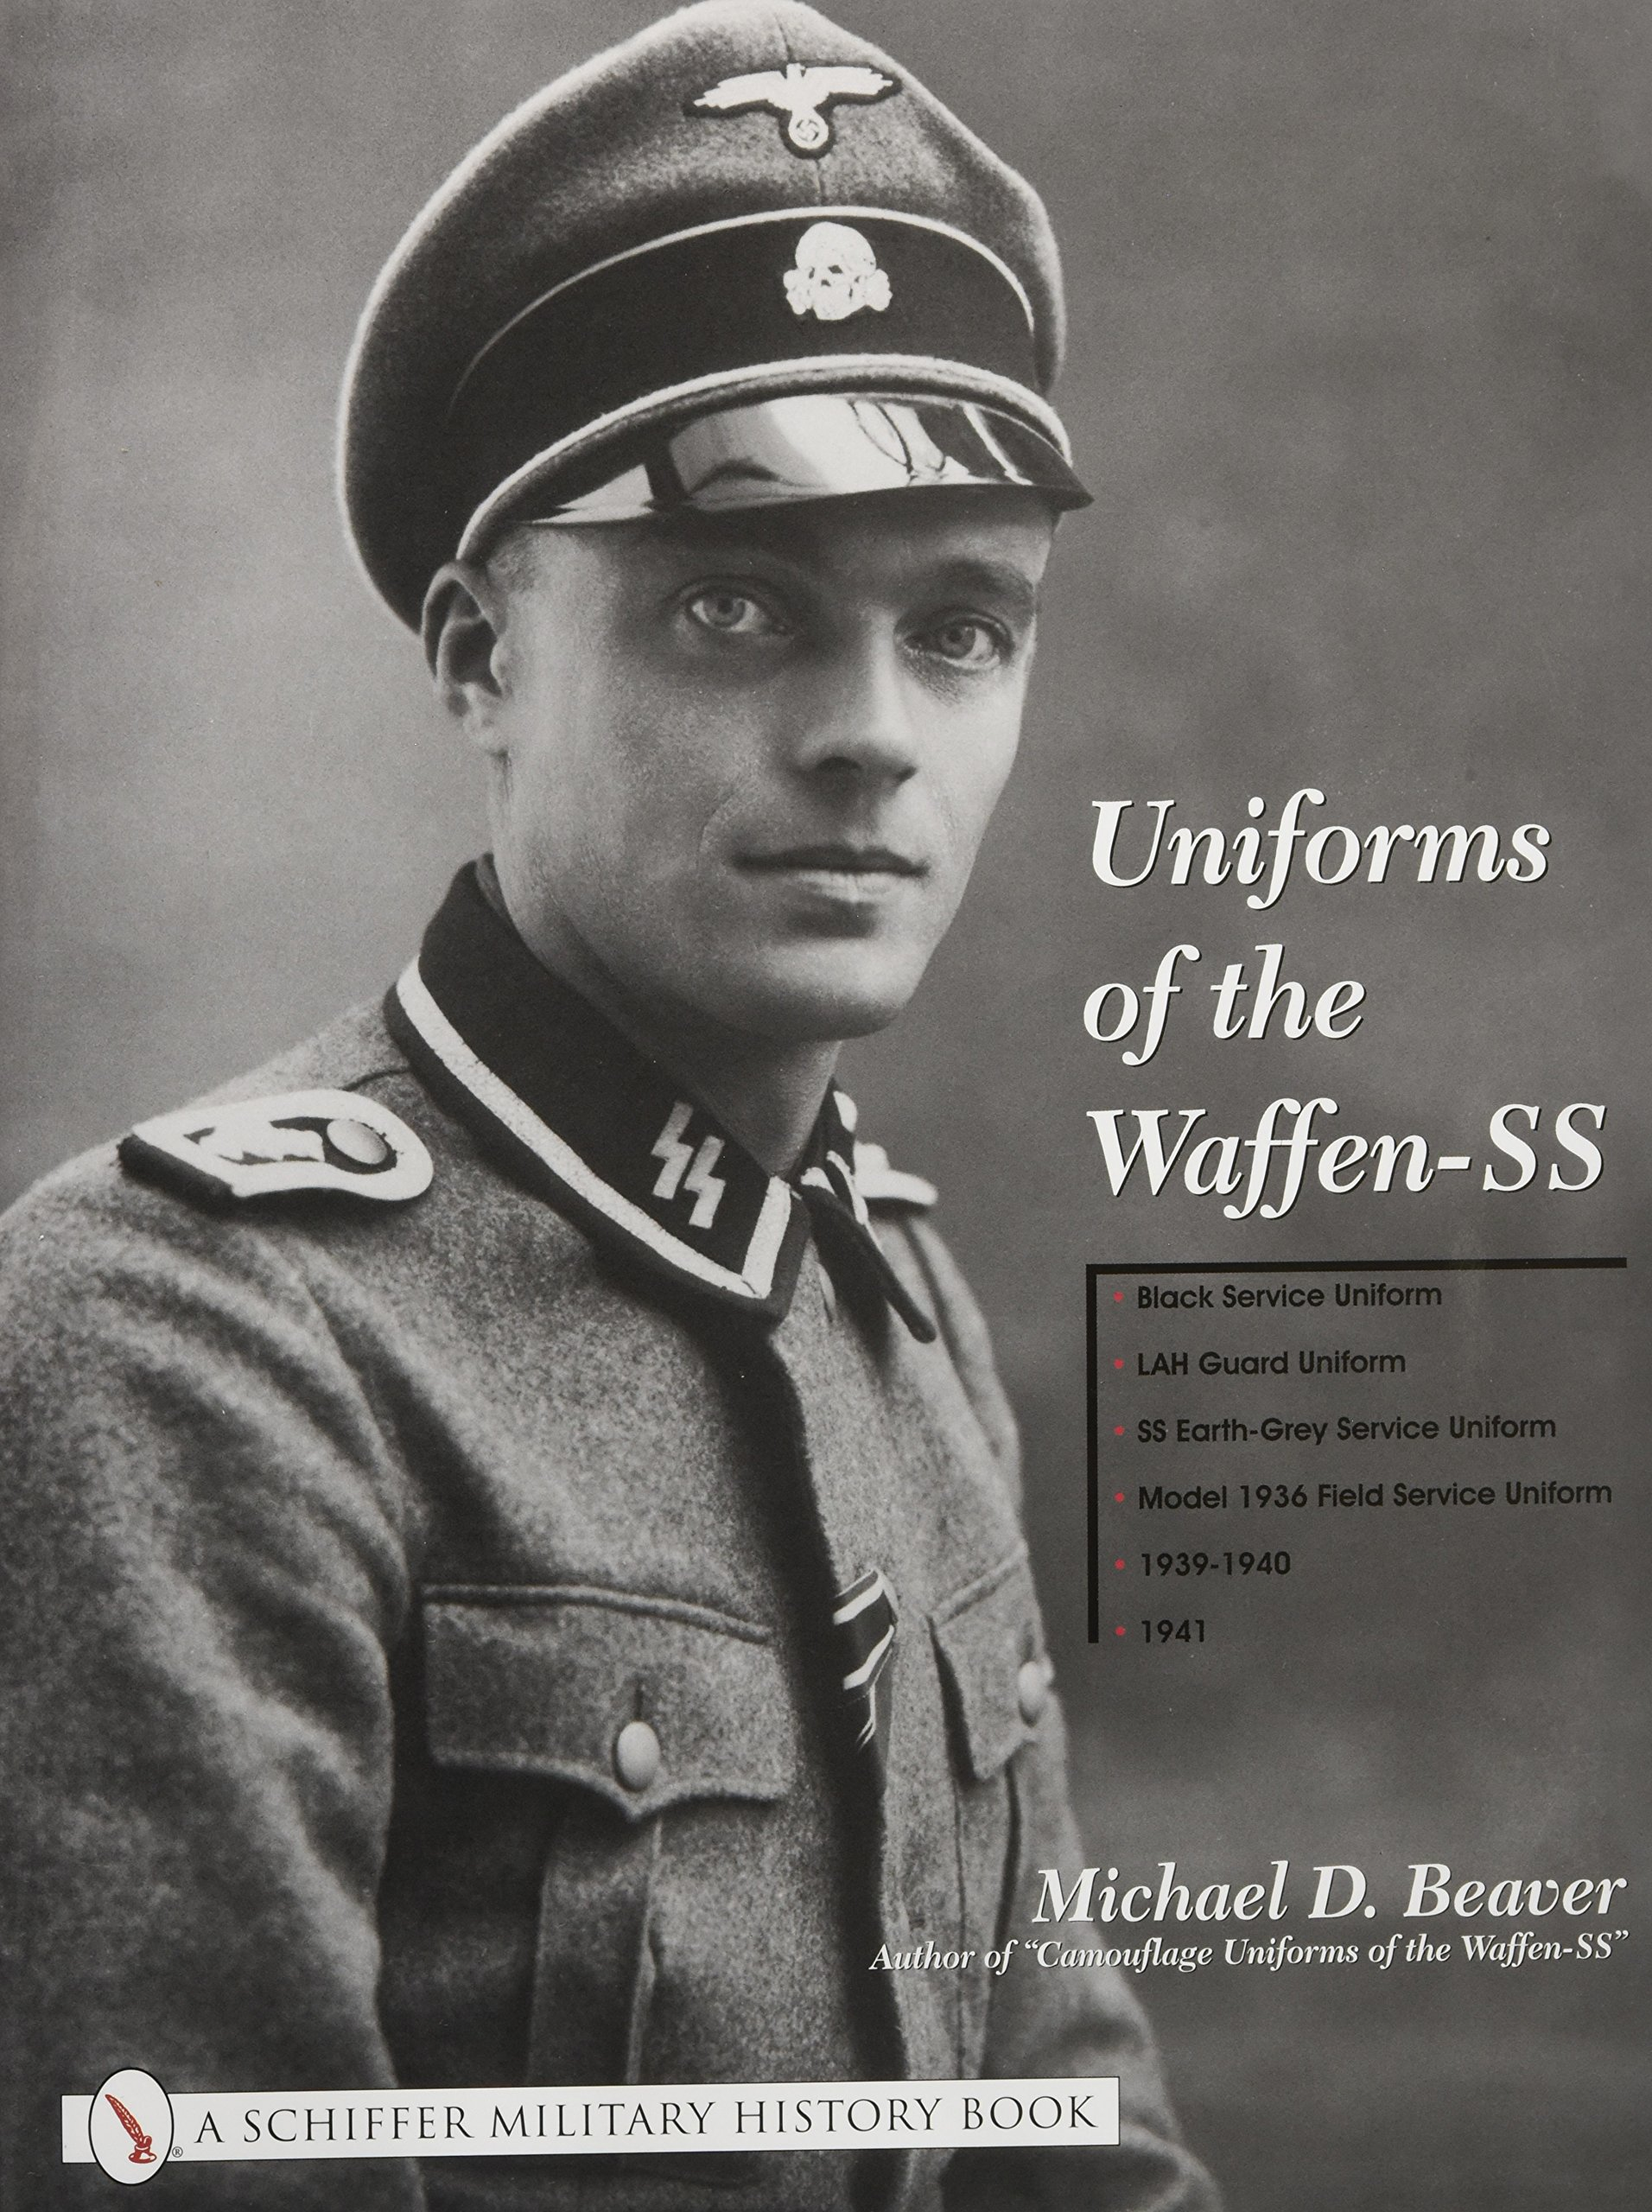 Uniforms of the Waffen-SS, Vol. 1: Black Service Uniform, LAH Guard Uniform, SS Earth-Grey Service Uniform, Model 1936 Field Service Uniform, 1939-1941